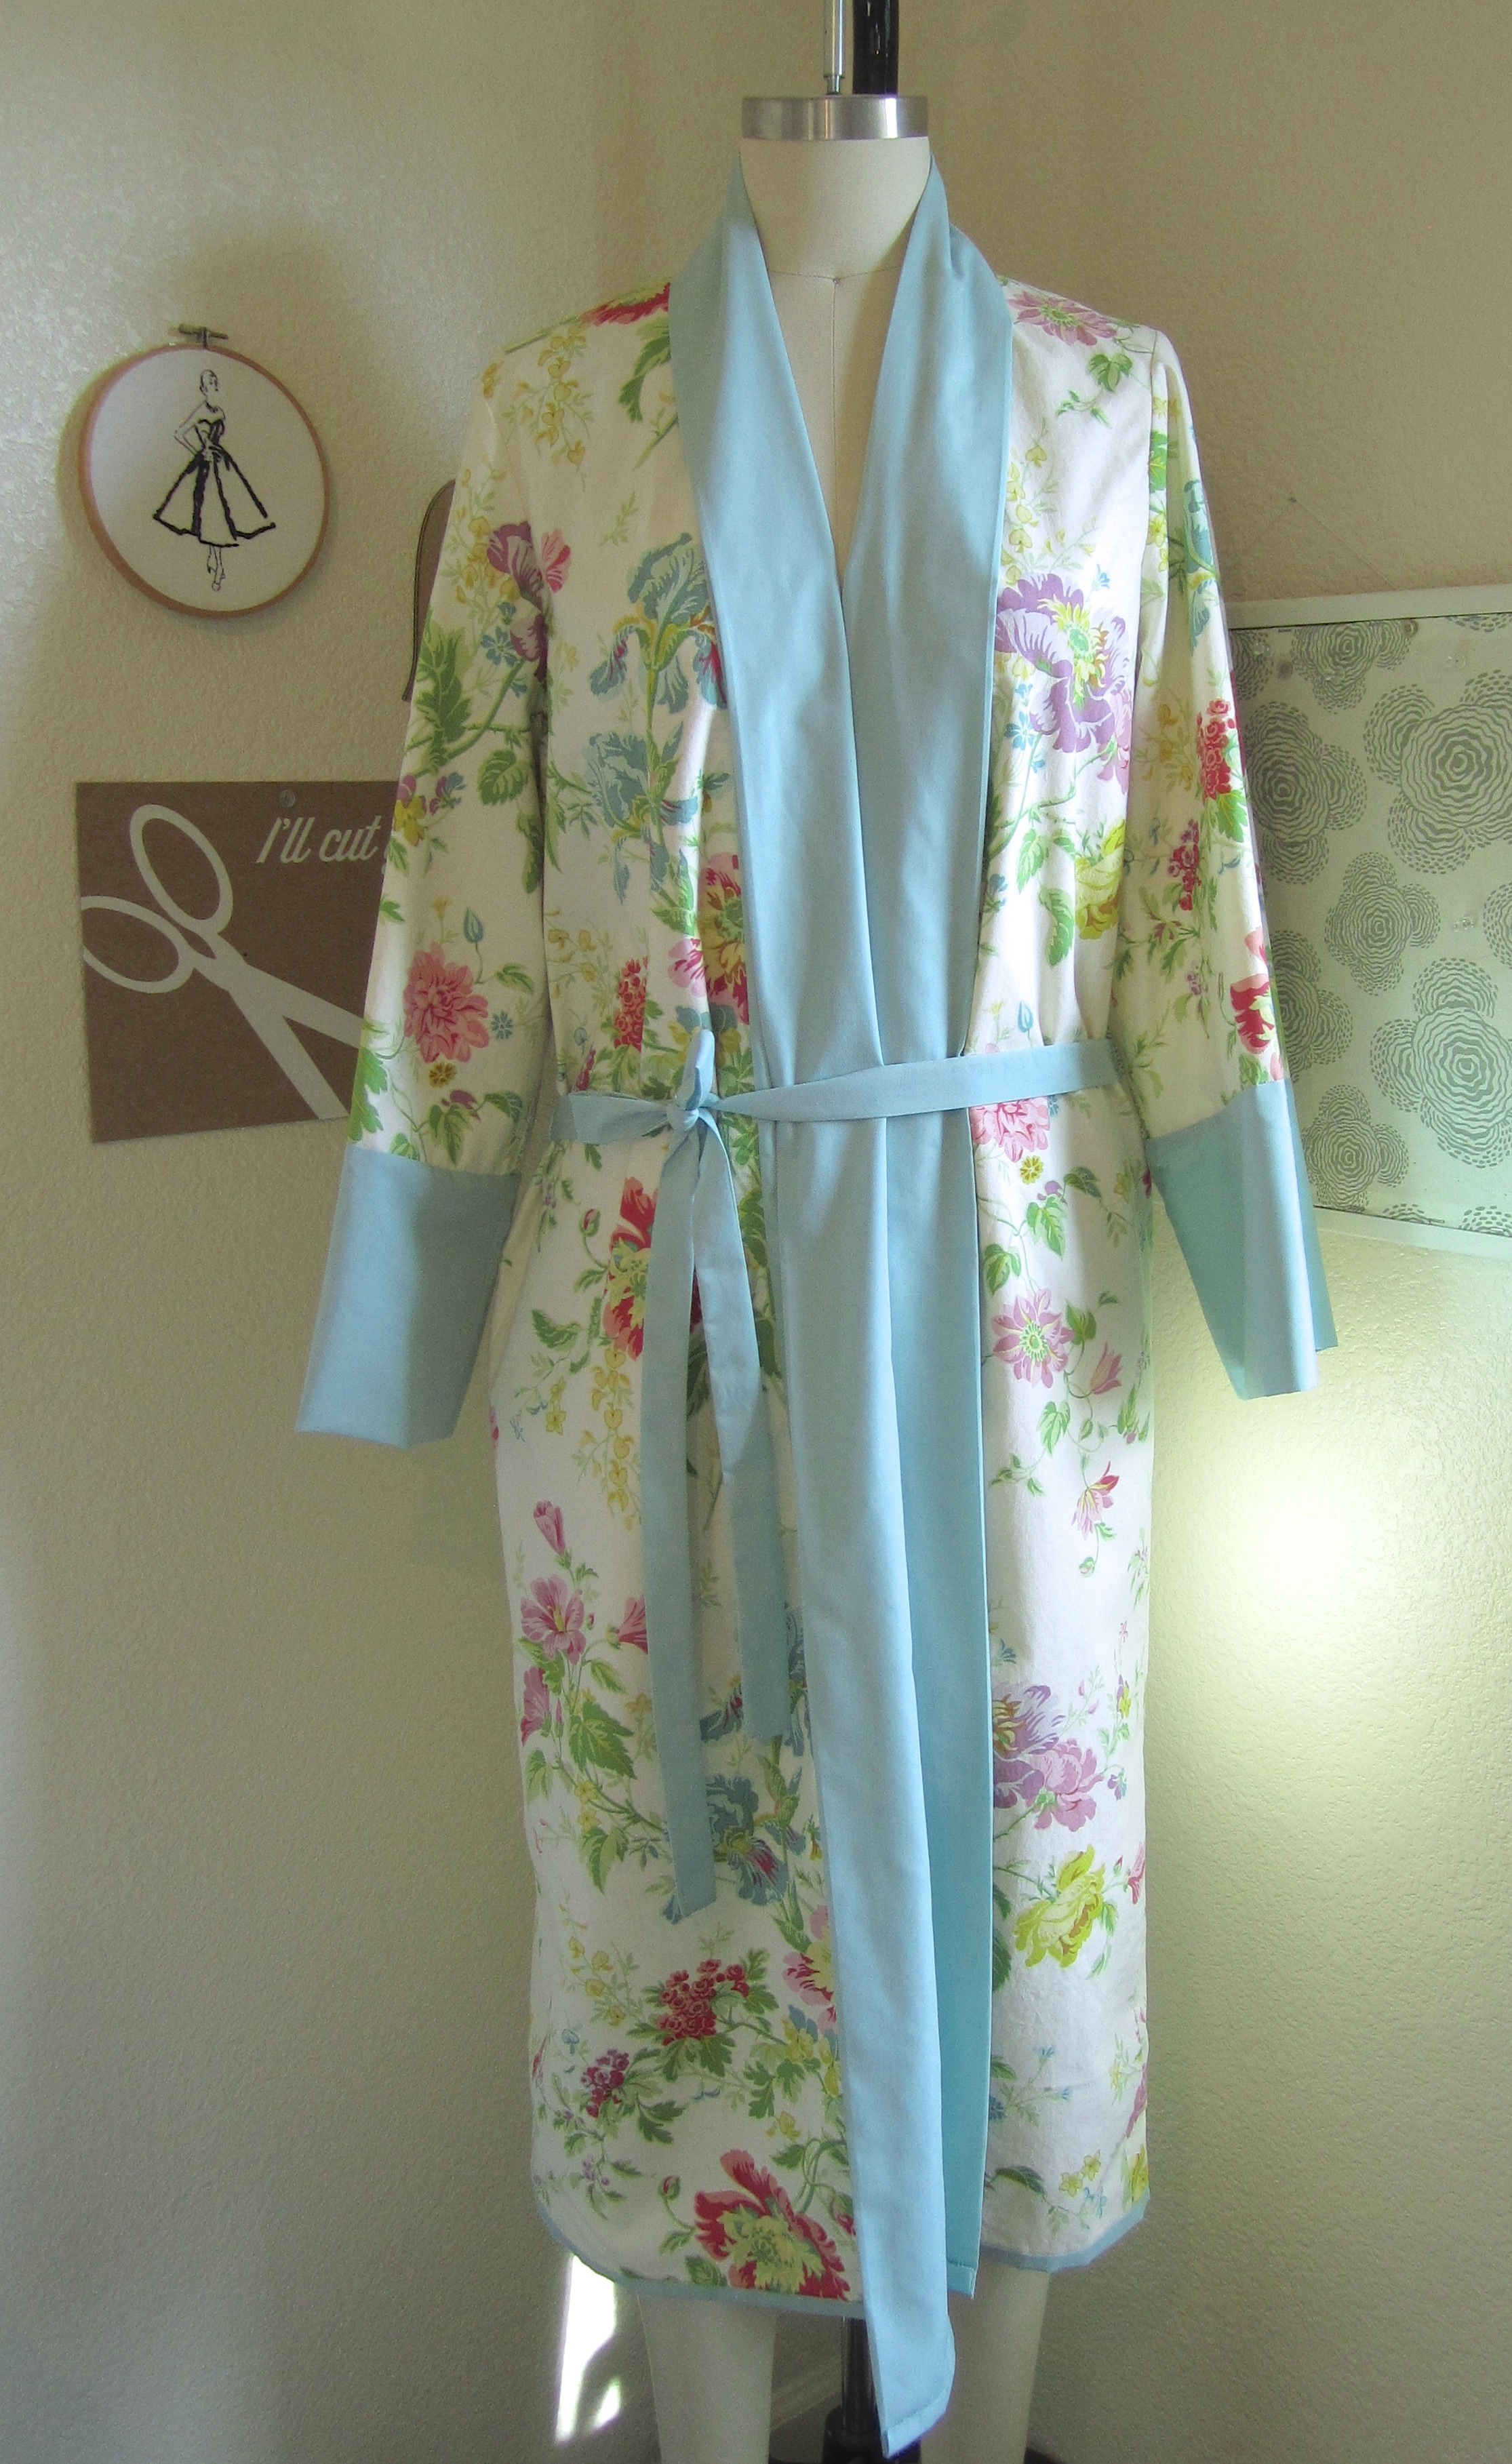 Burda Schnittmuster Neglige Mccall 5044 A 1920 39s Robe Sewing Projects Burdastyle